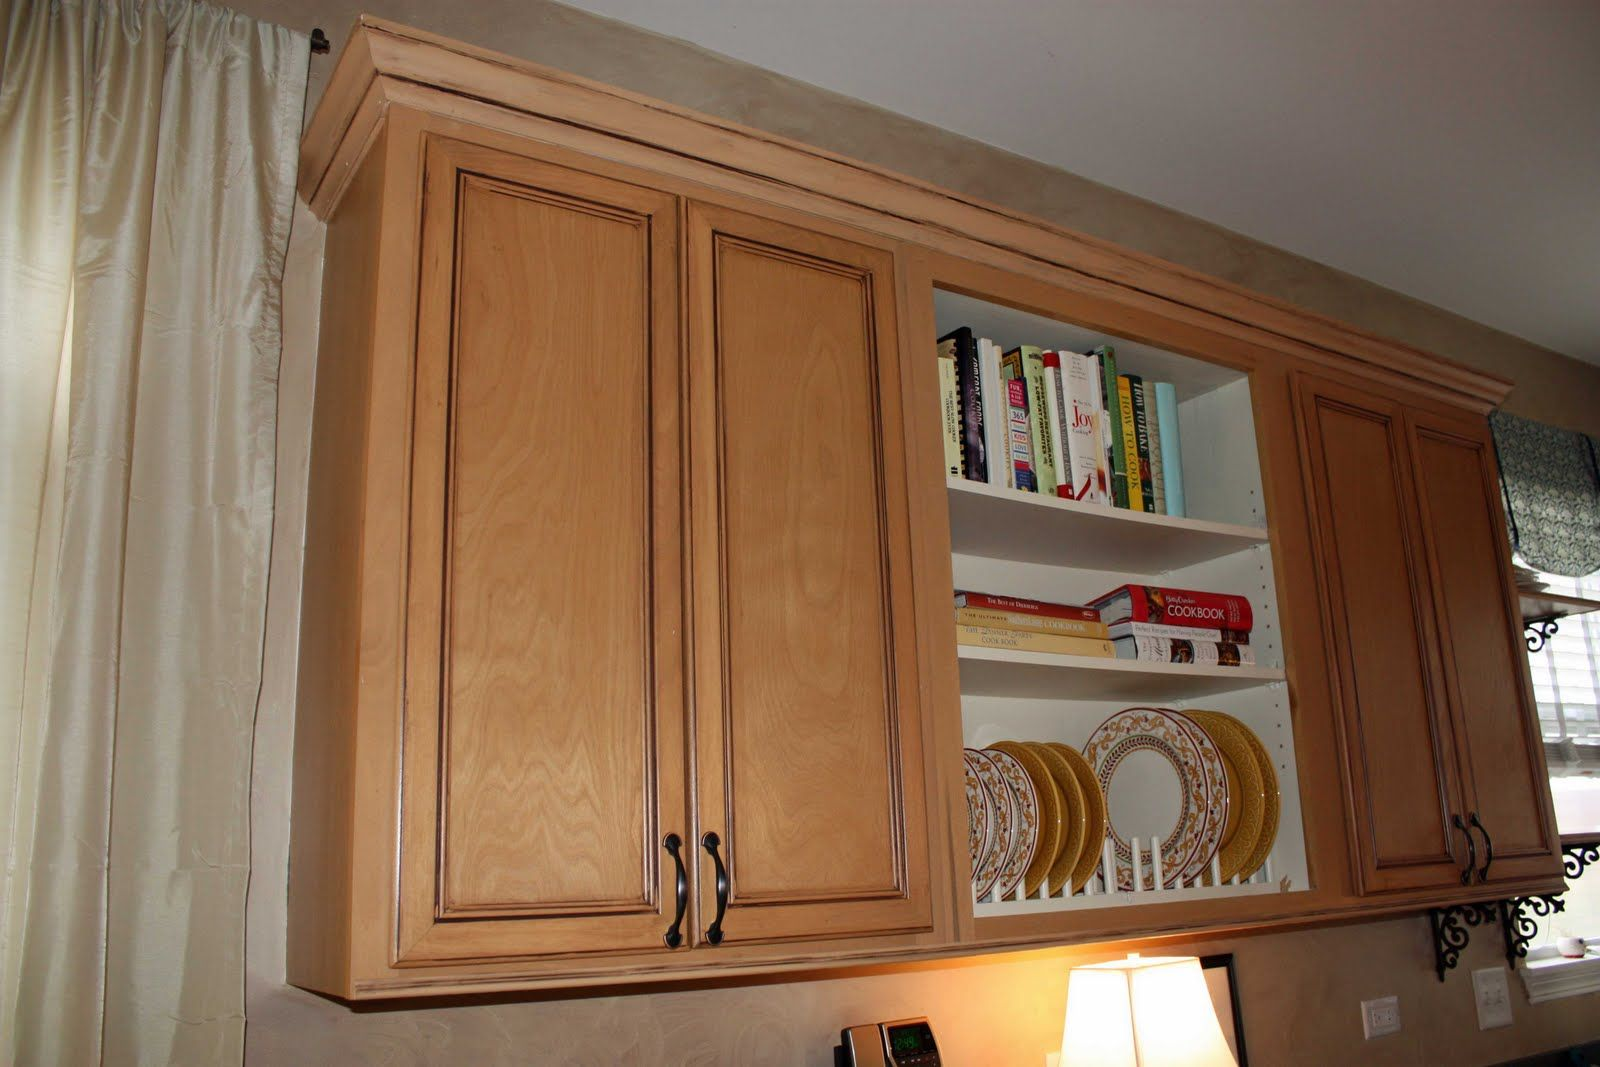 transforming home how to add crown molding to kitchen cabinets rh br pinterest com